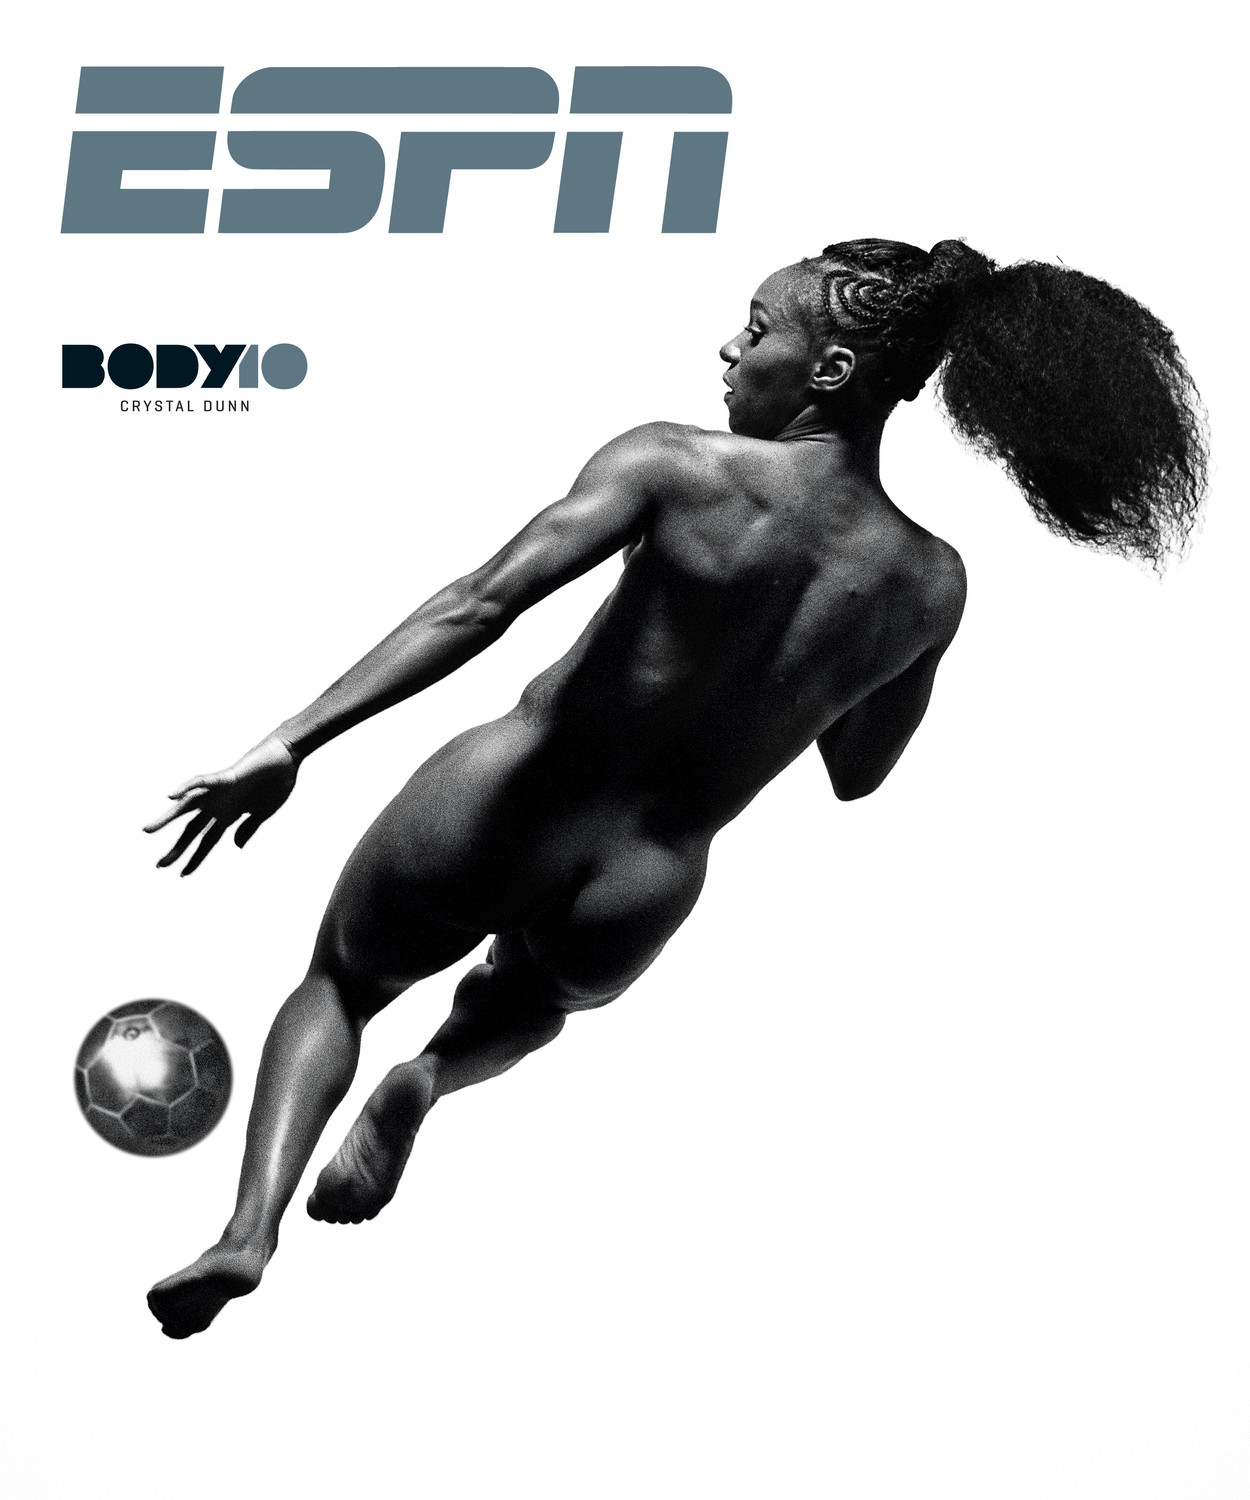 Former South Side High School soccer star Crystal Dunn, a member of the United States Women's National Team, was one of 16 athletes to appear naked in ESPN the Magazine's 2018 Body Issue. She was featured on one version of the magazine's cover.